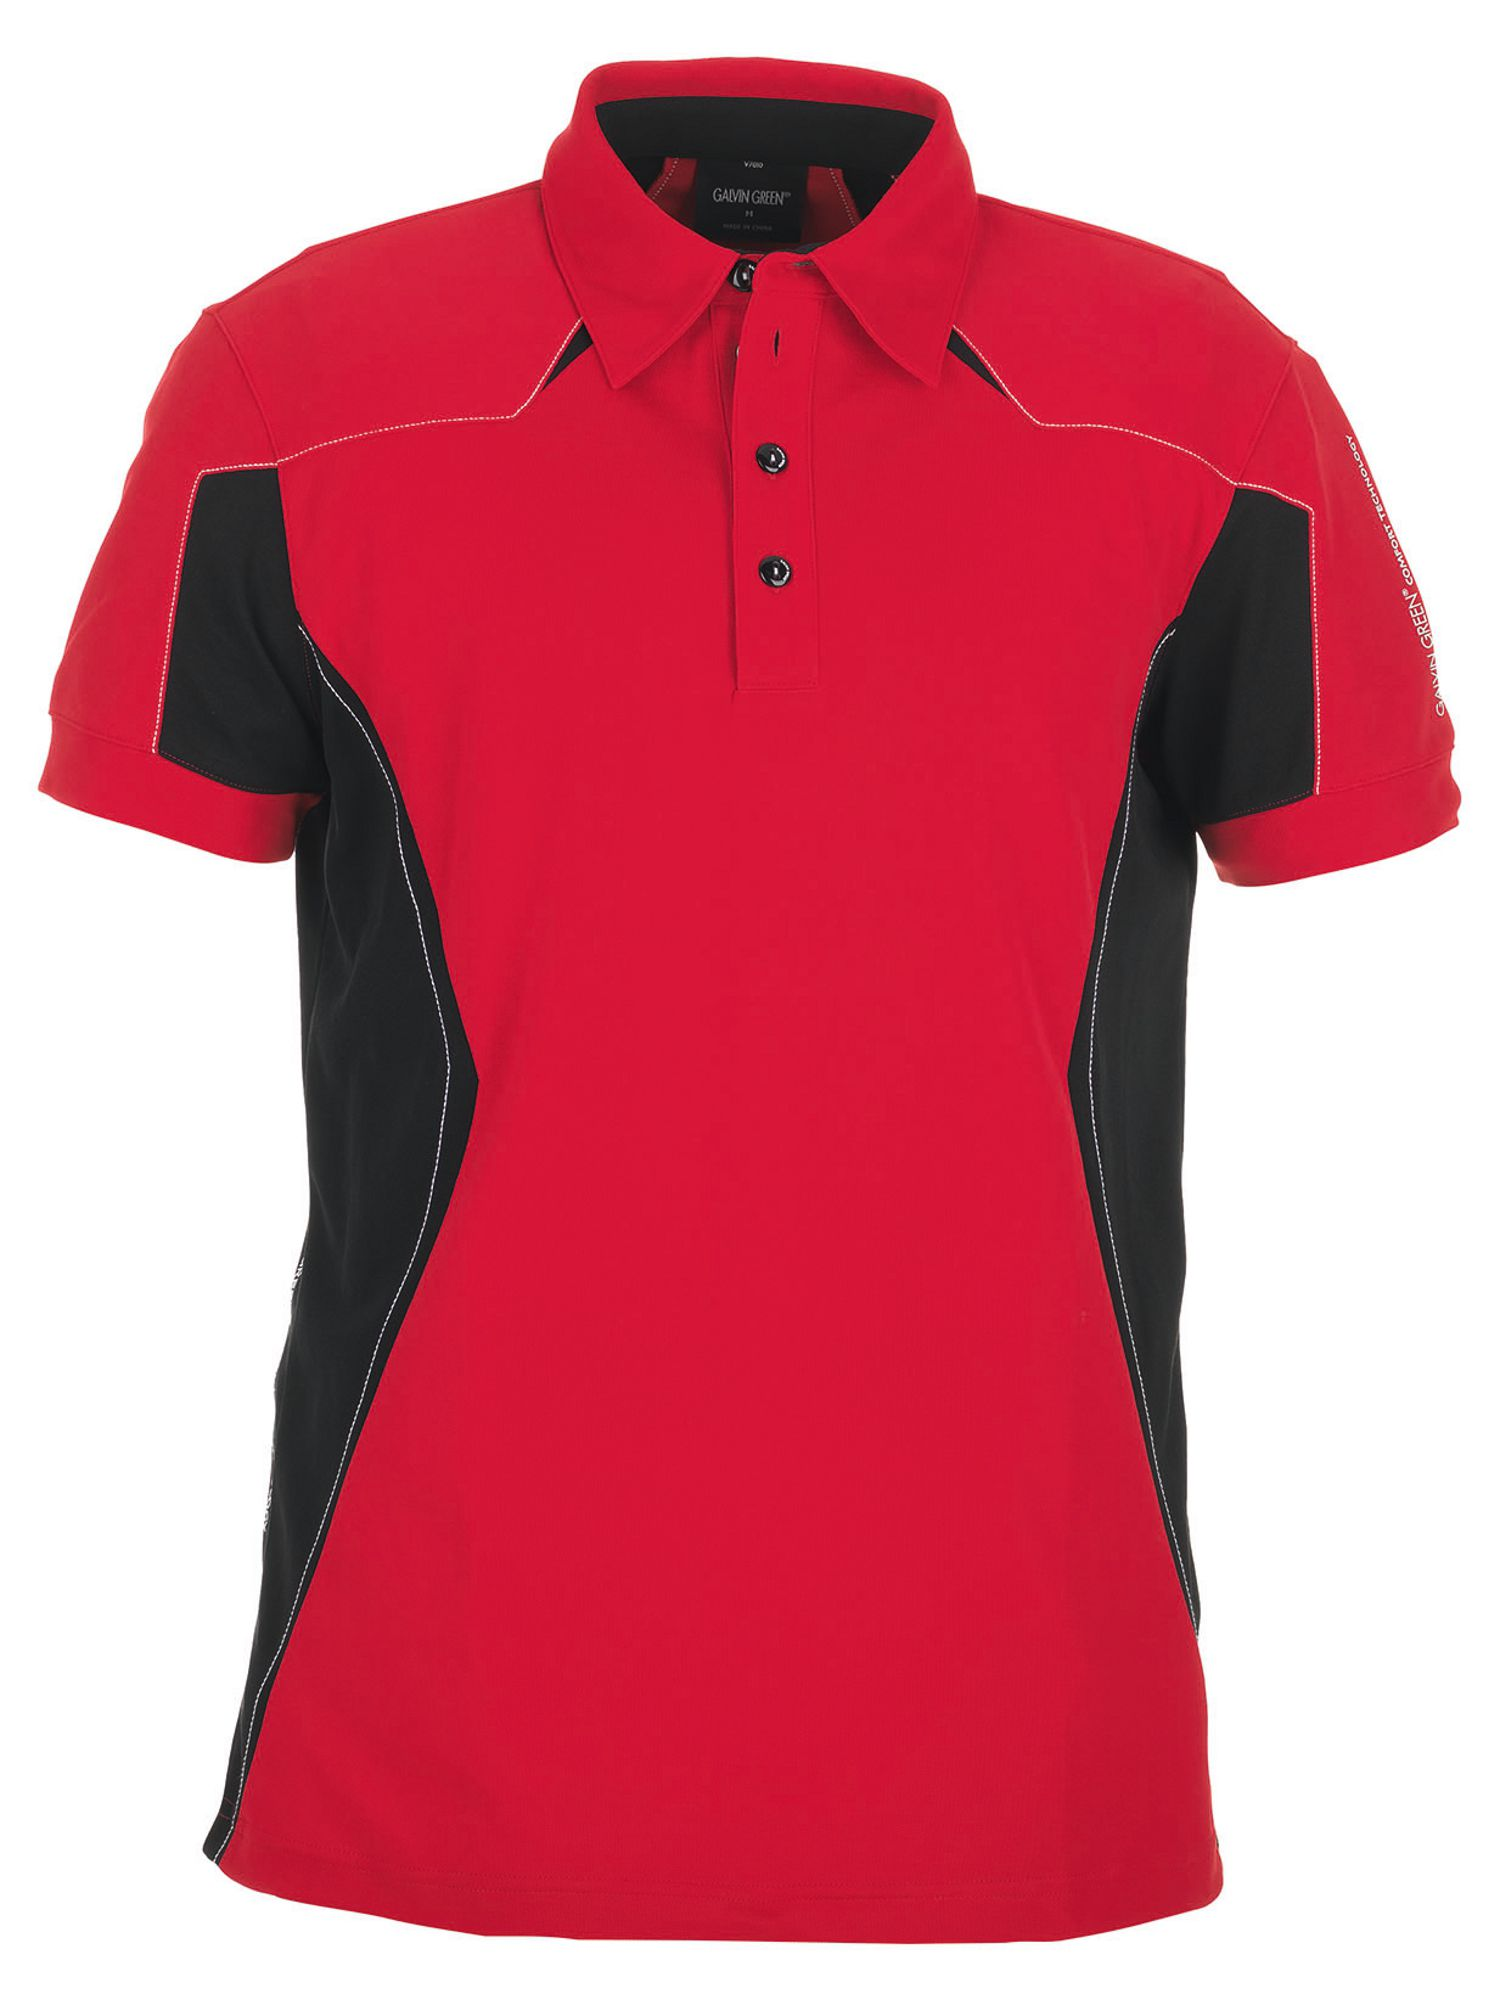 Murray polo shirt